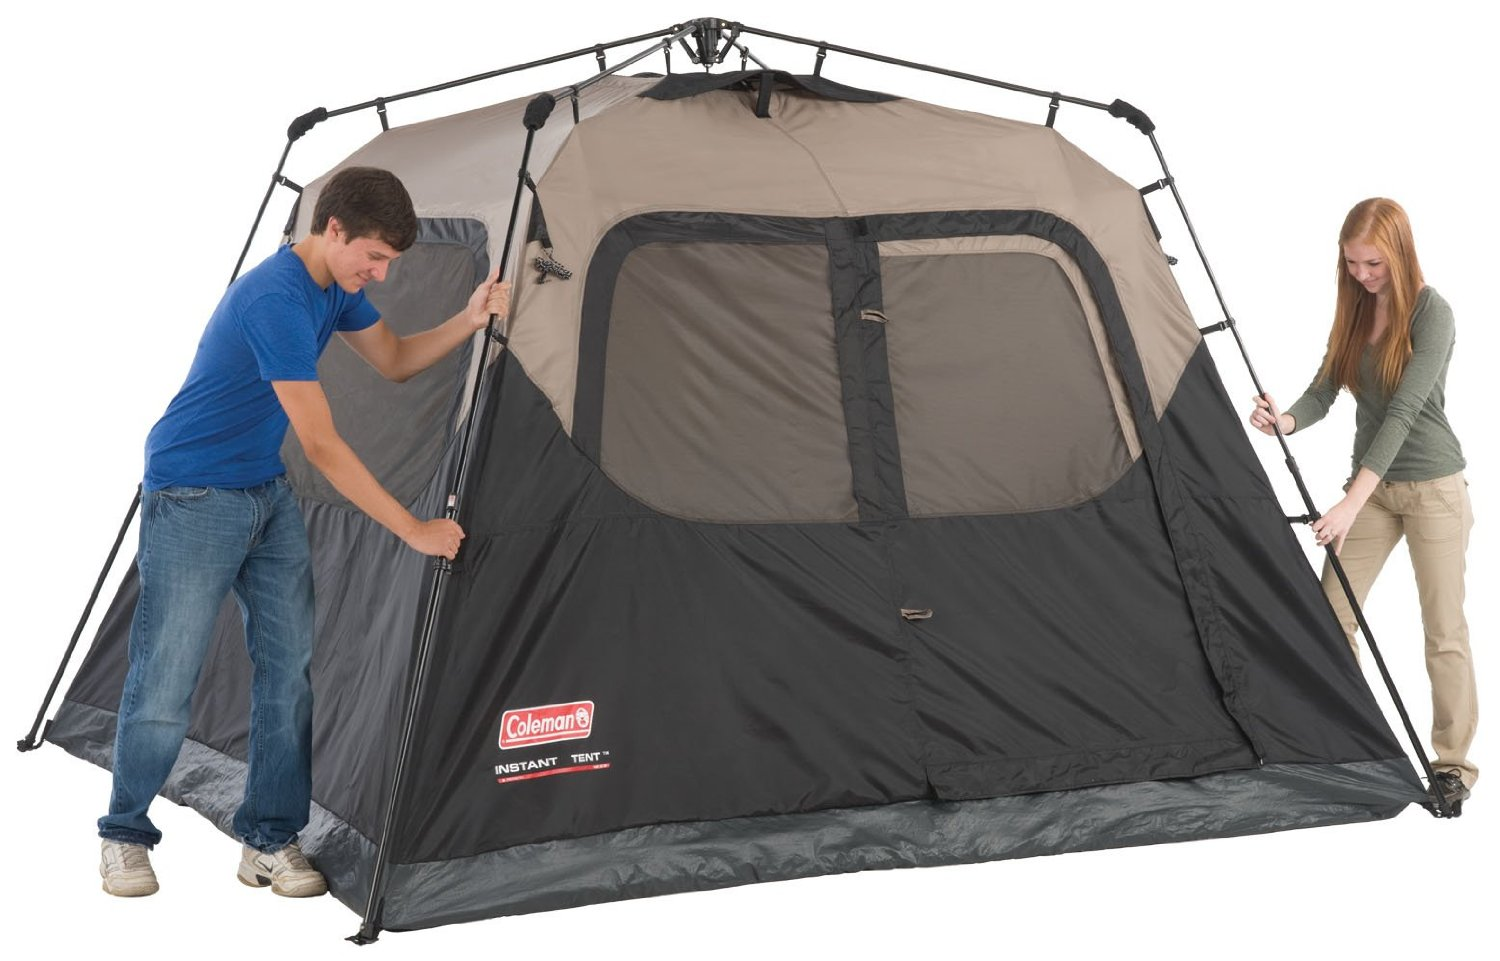 Highly Rated 6 Person Colman Instant Tent For 99 99